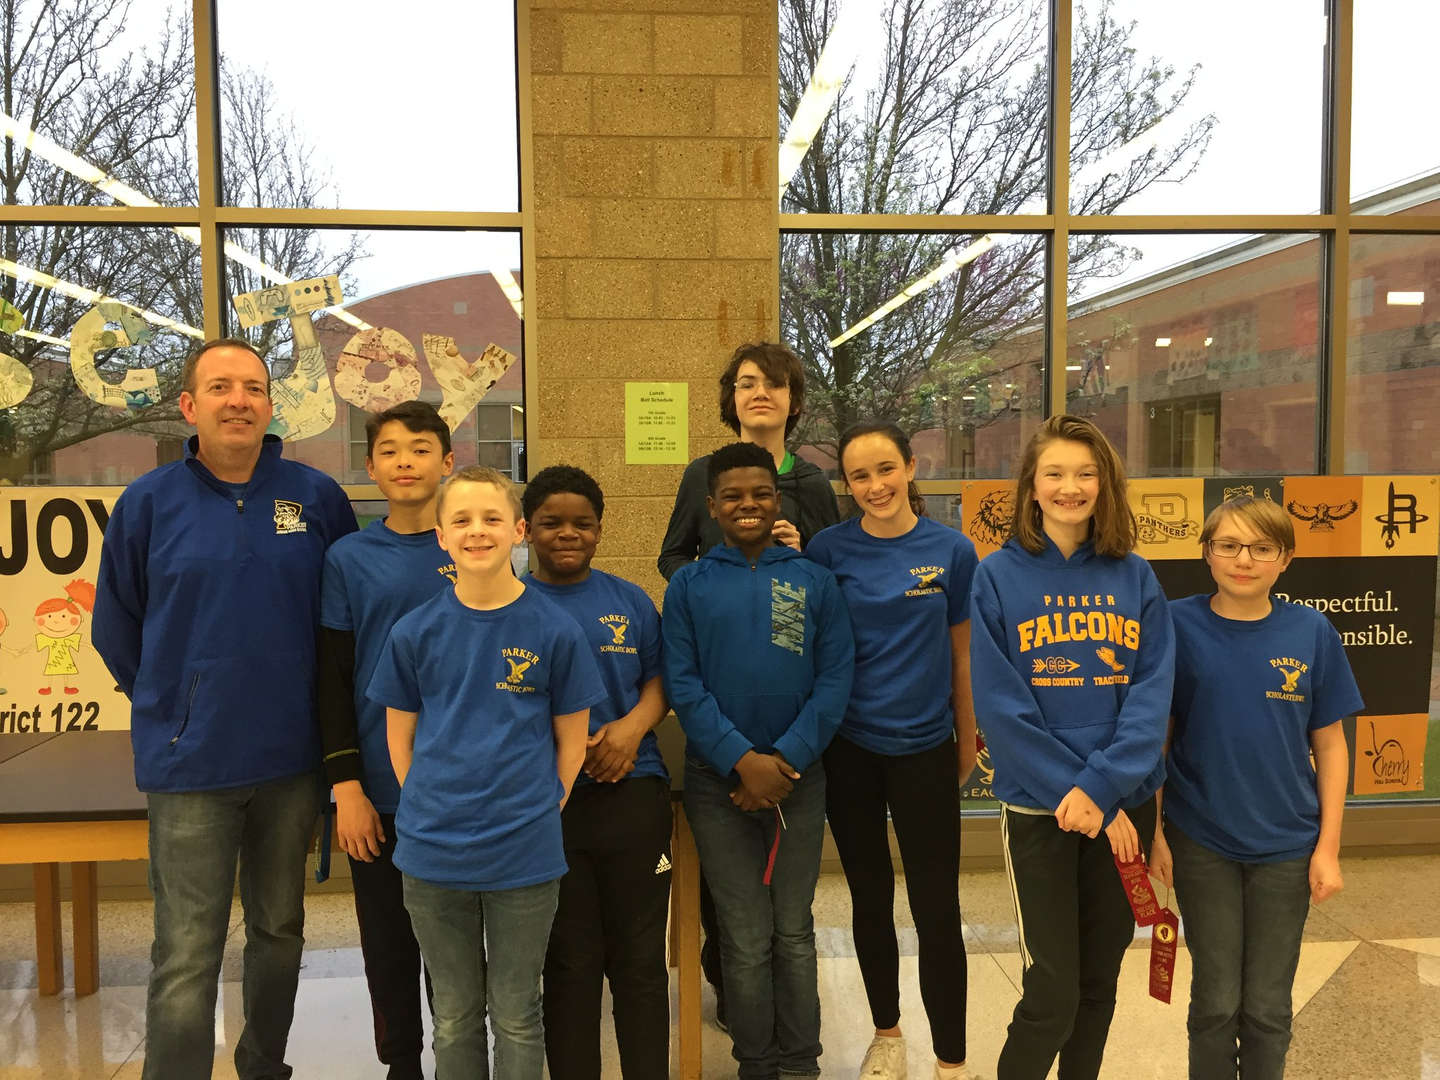 Parker Scholastic Bowl Falcons finished second in the sectional tournament at Martino Junior High